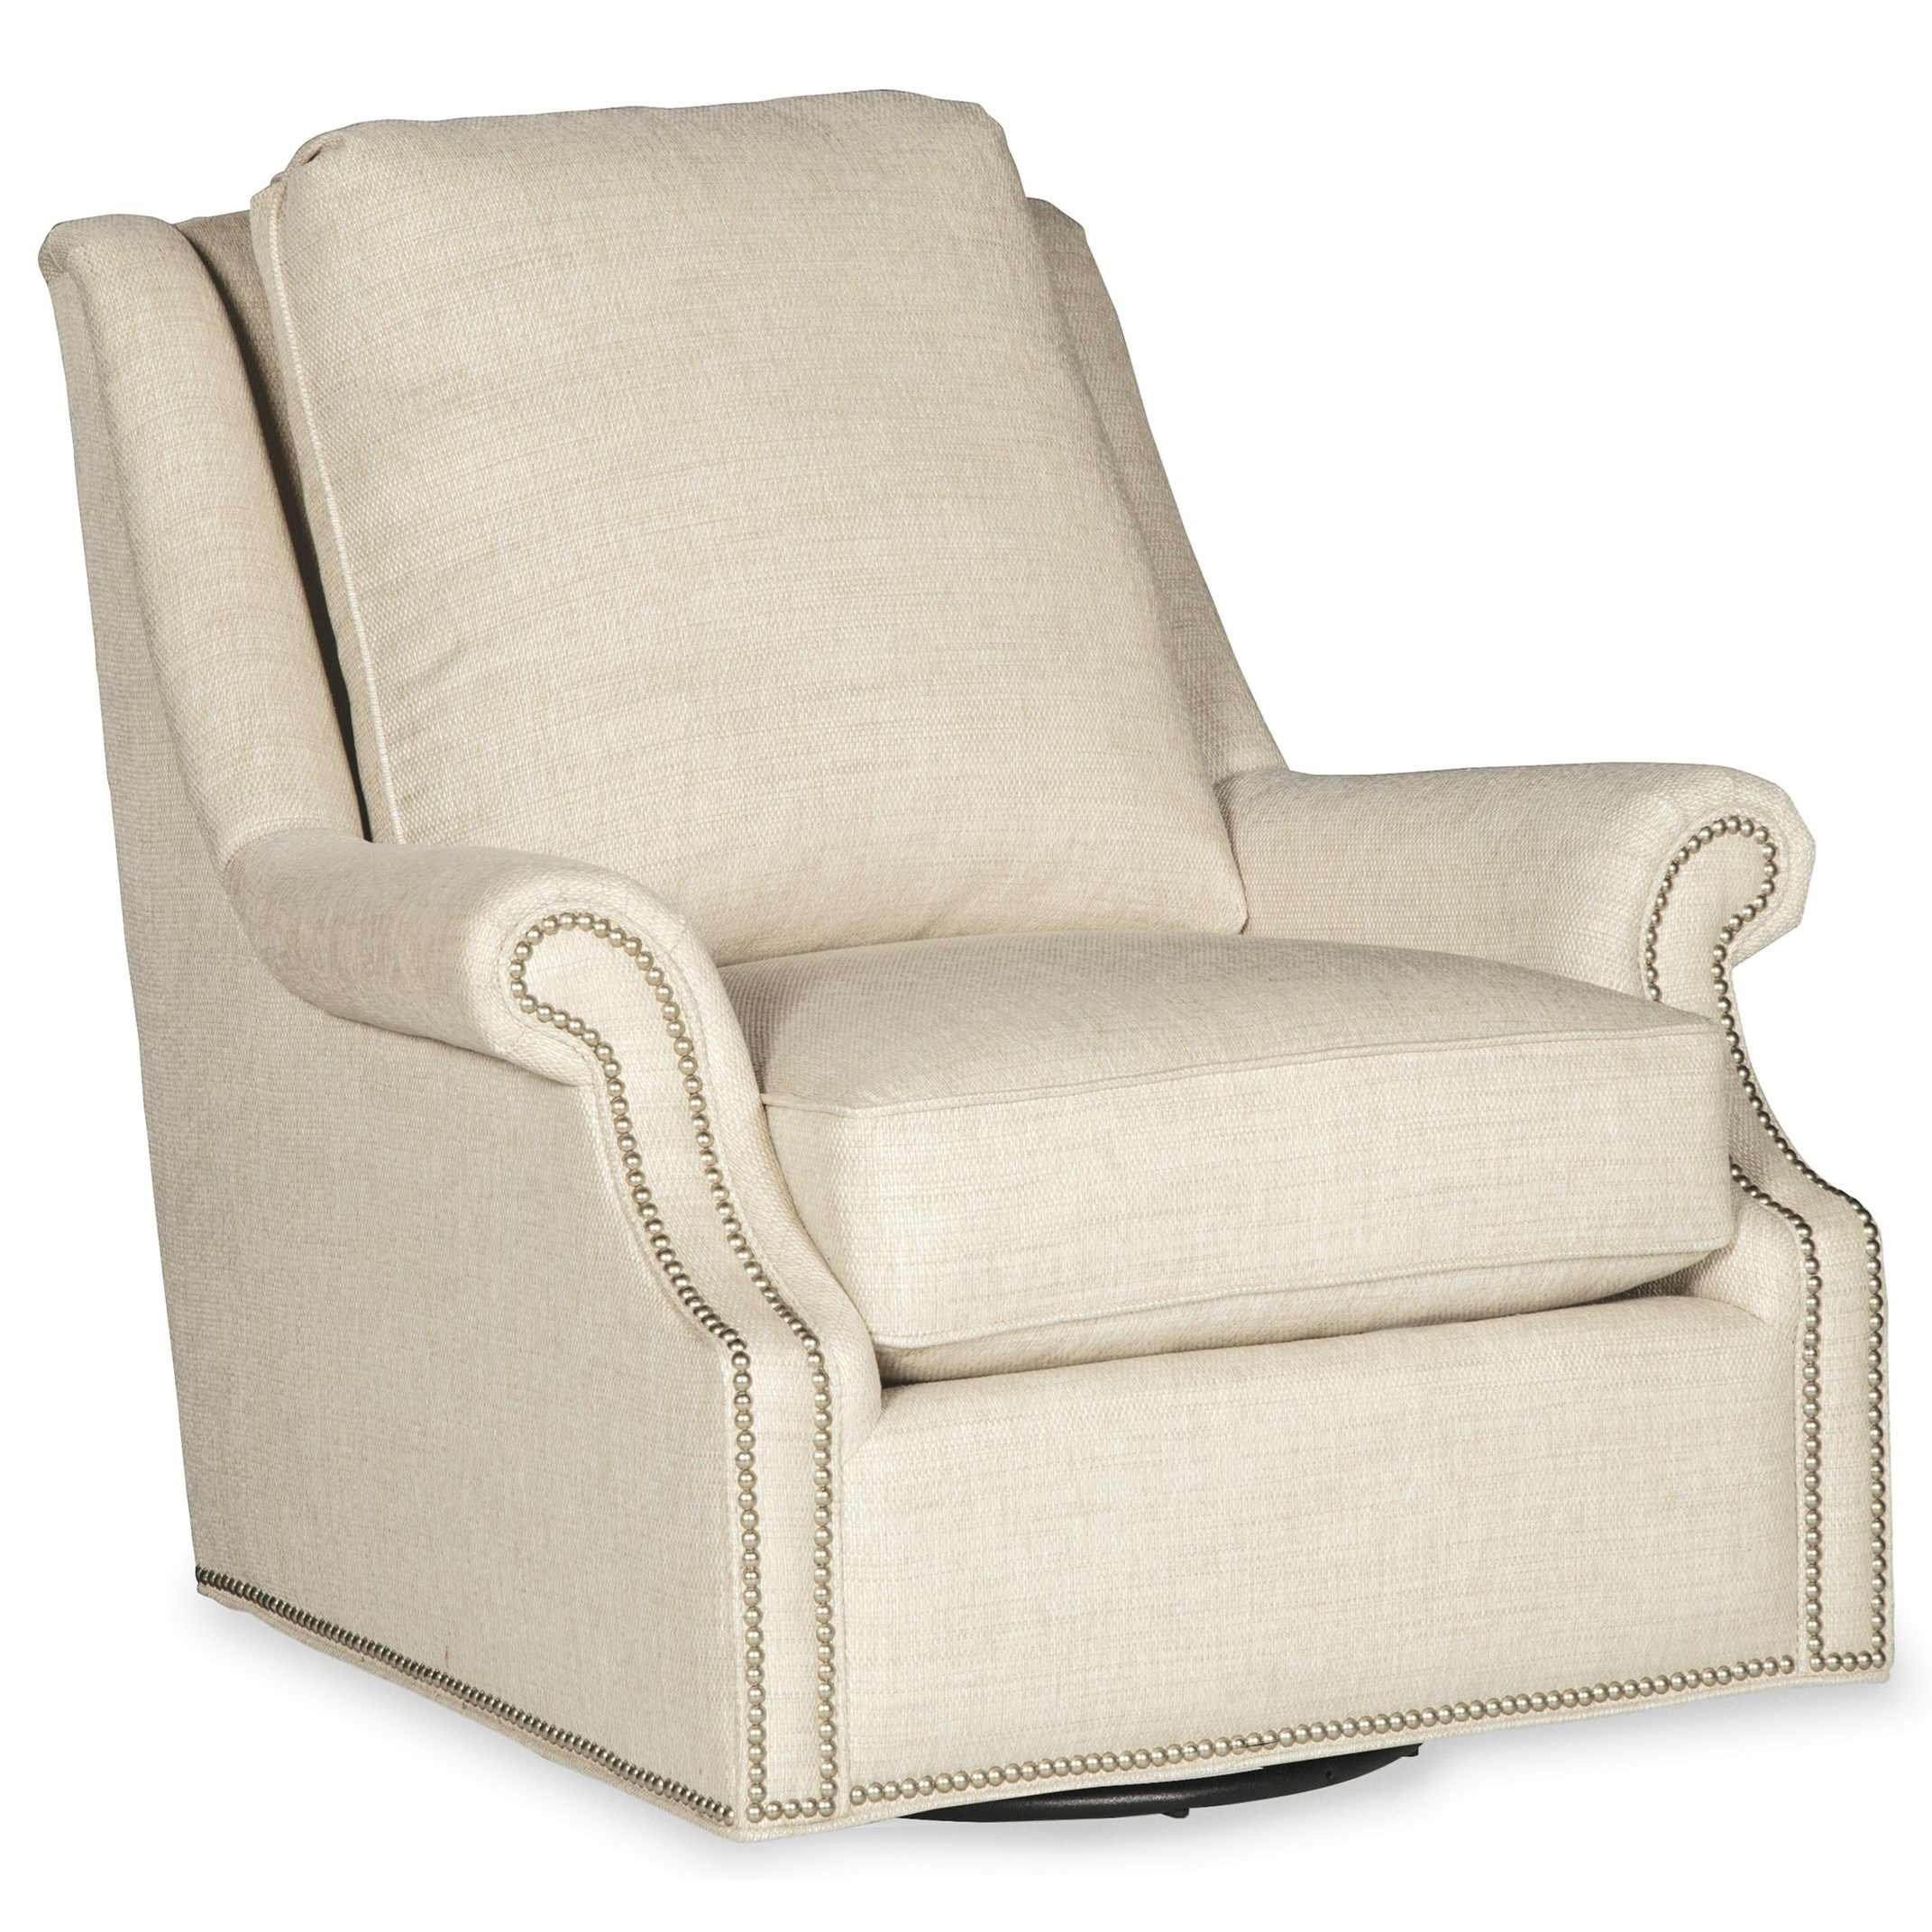 004510SG Swivel Chair by Craftmaster at VanDrie Home Furnishings